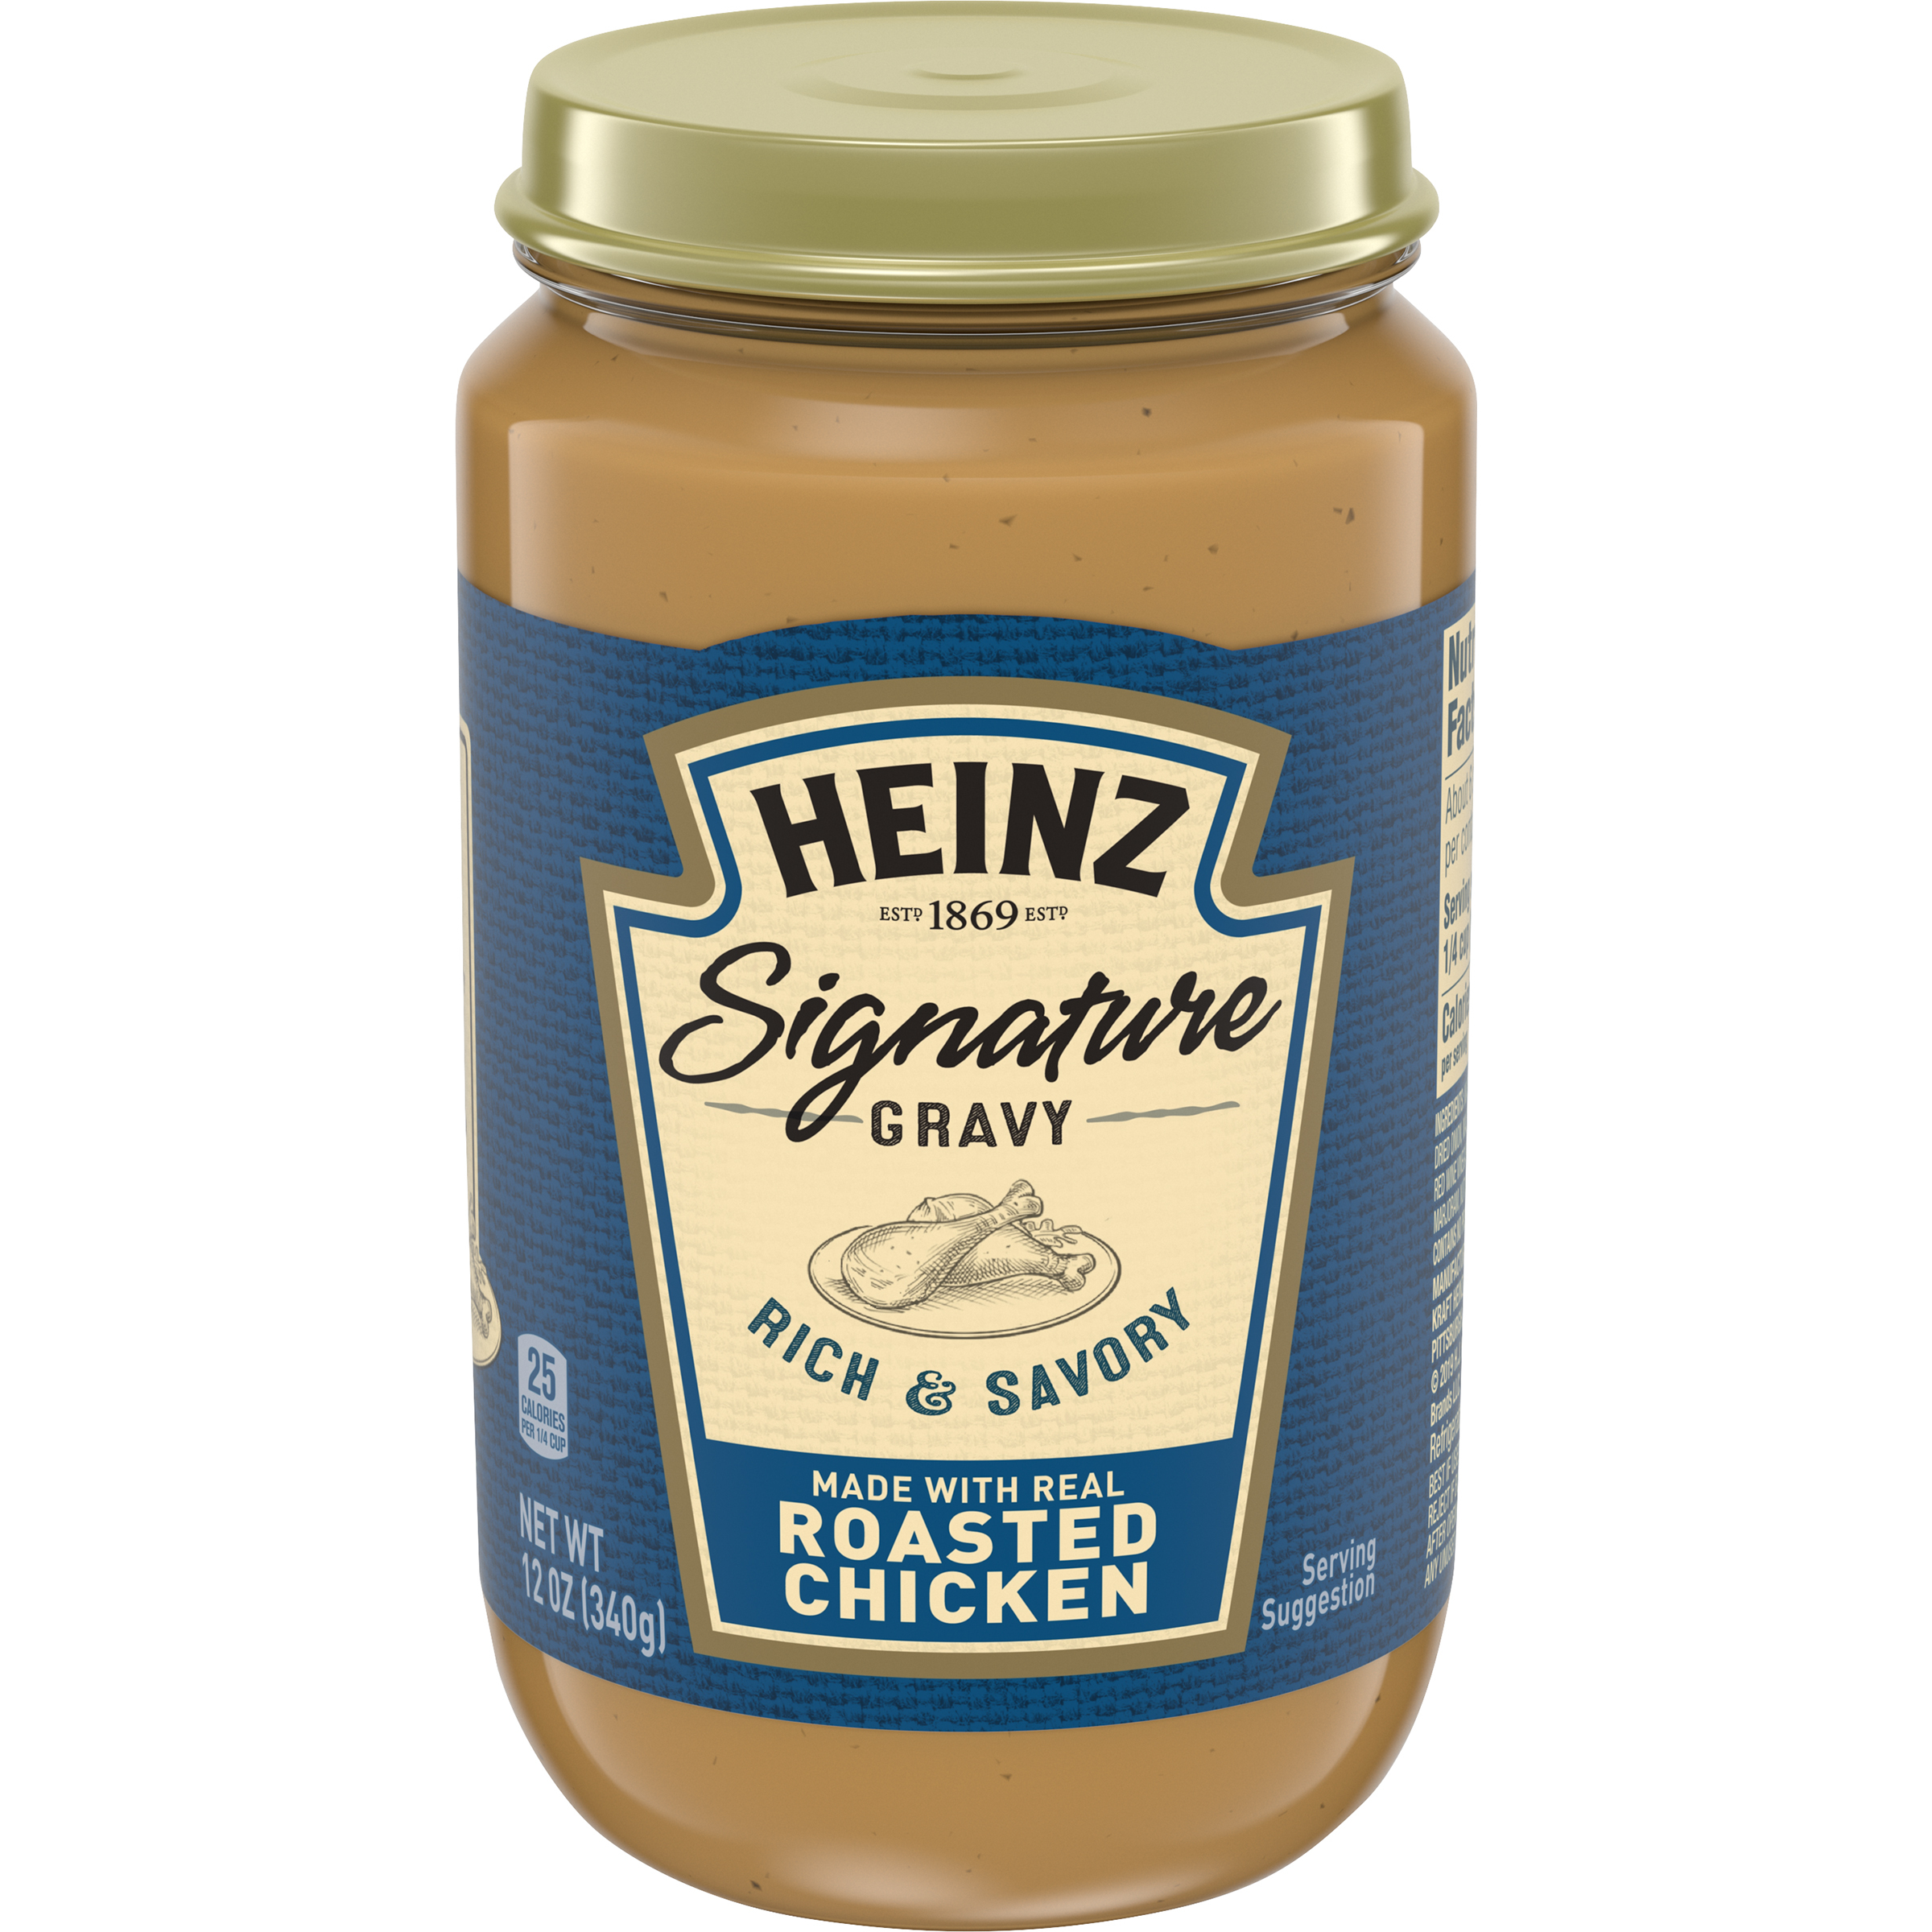 Heinz Signature Rich & Savory Roasted Chicken Gravy 12 oz Jar image